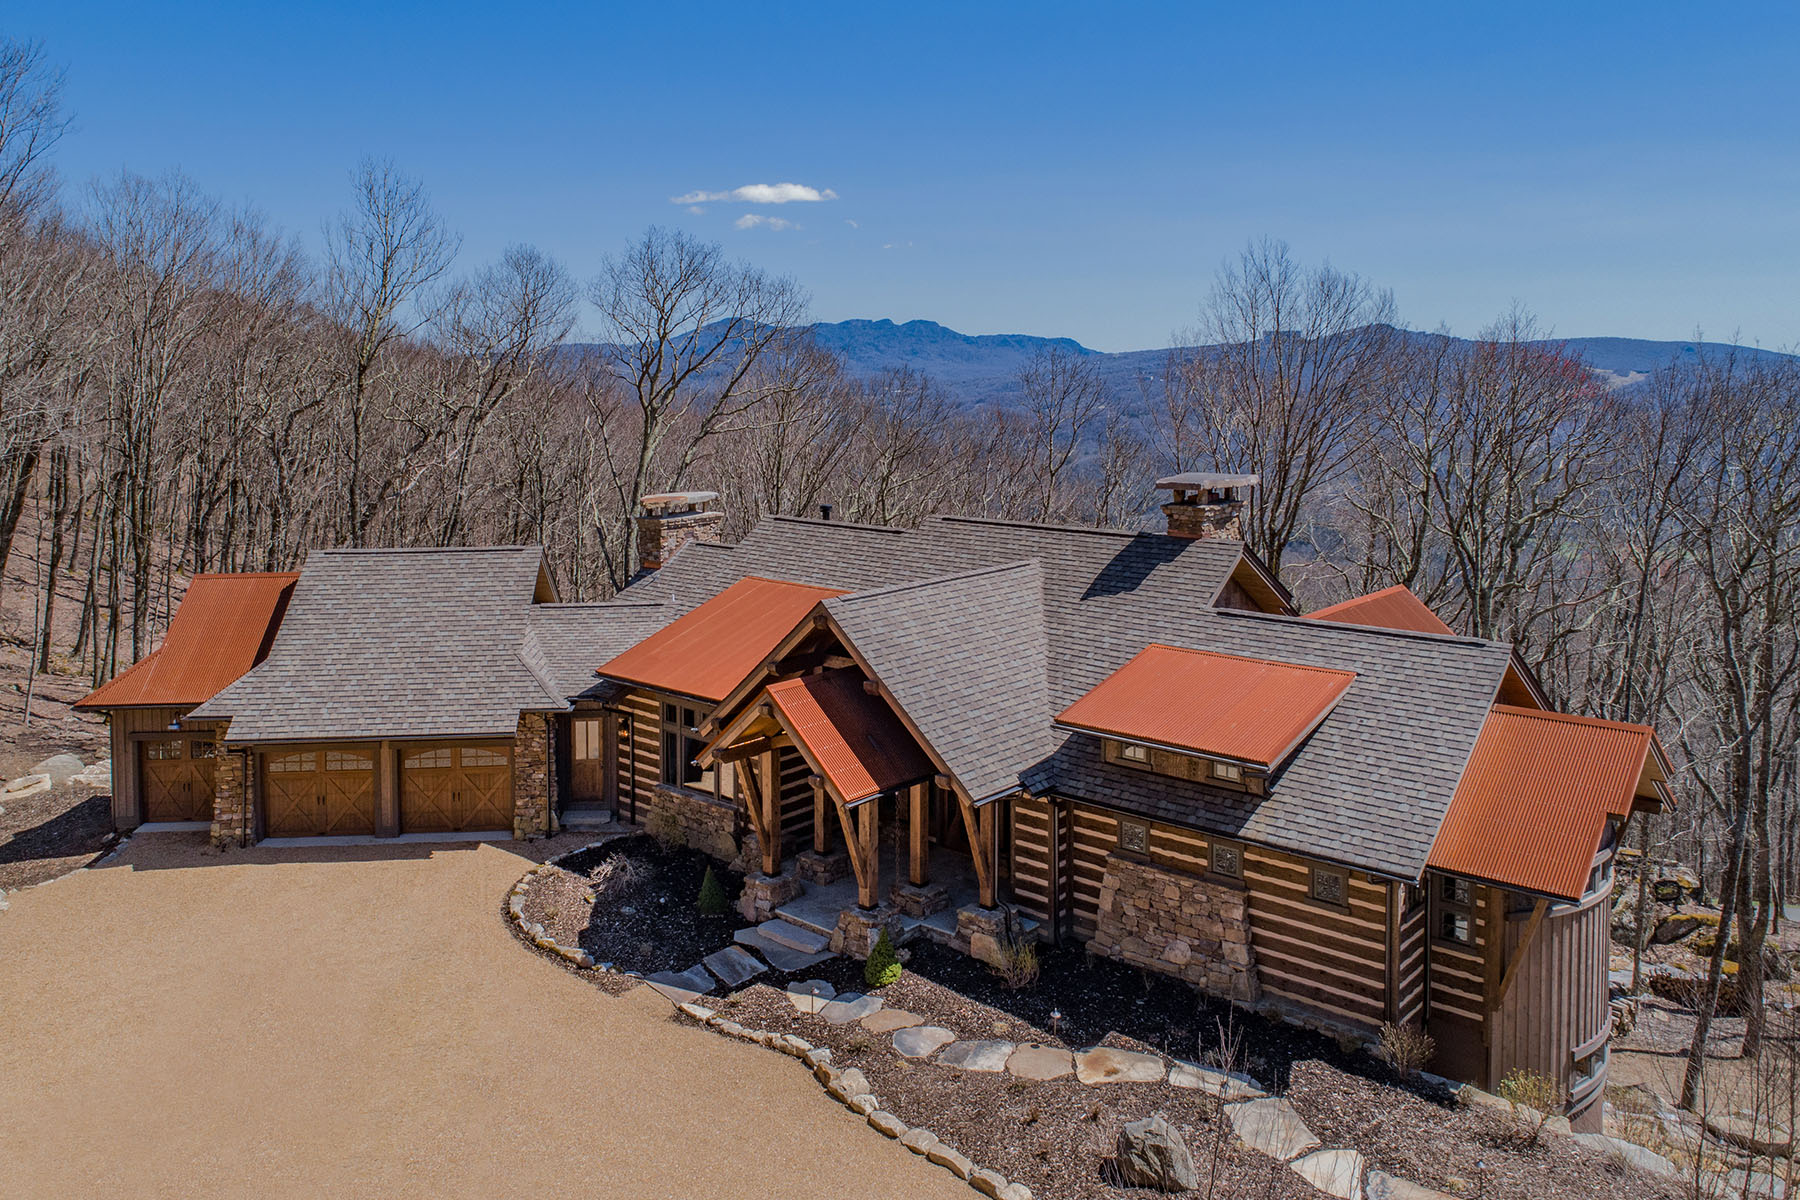 Single Family Homes for Sale at BANNER ELK - THE LODGES AT EAGLES NEST 2380 Eagles Nest Trl Banner Elk, North Carolina 28604 United States